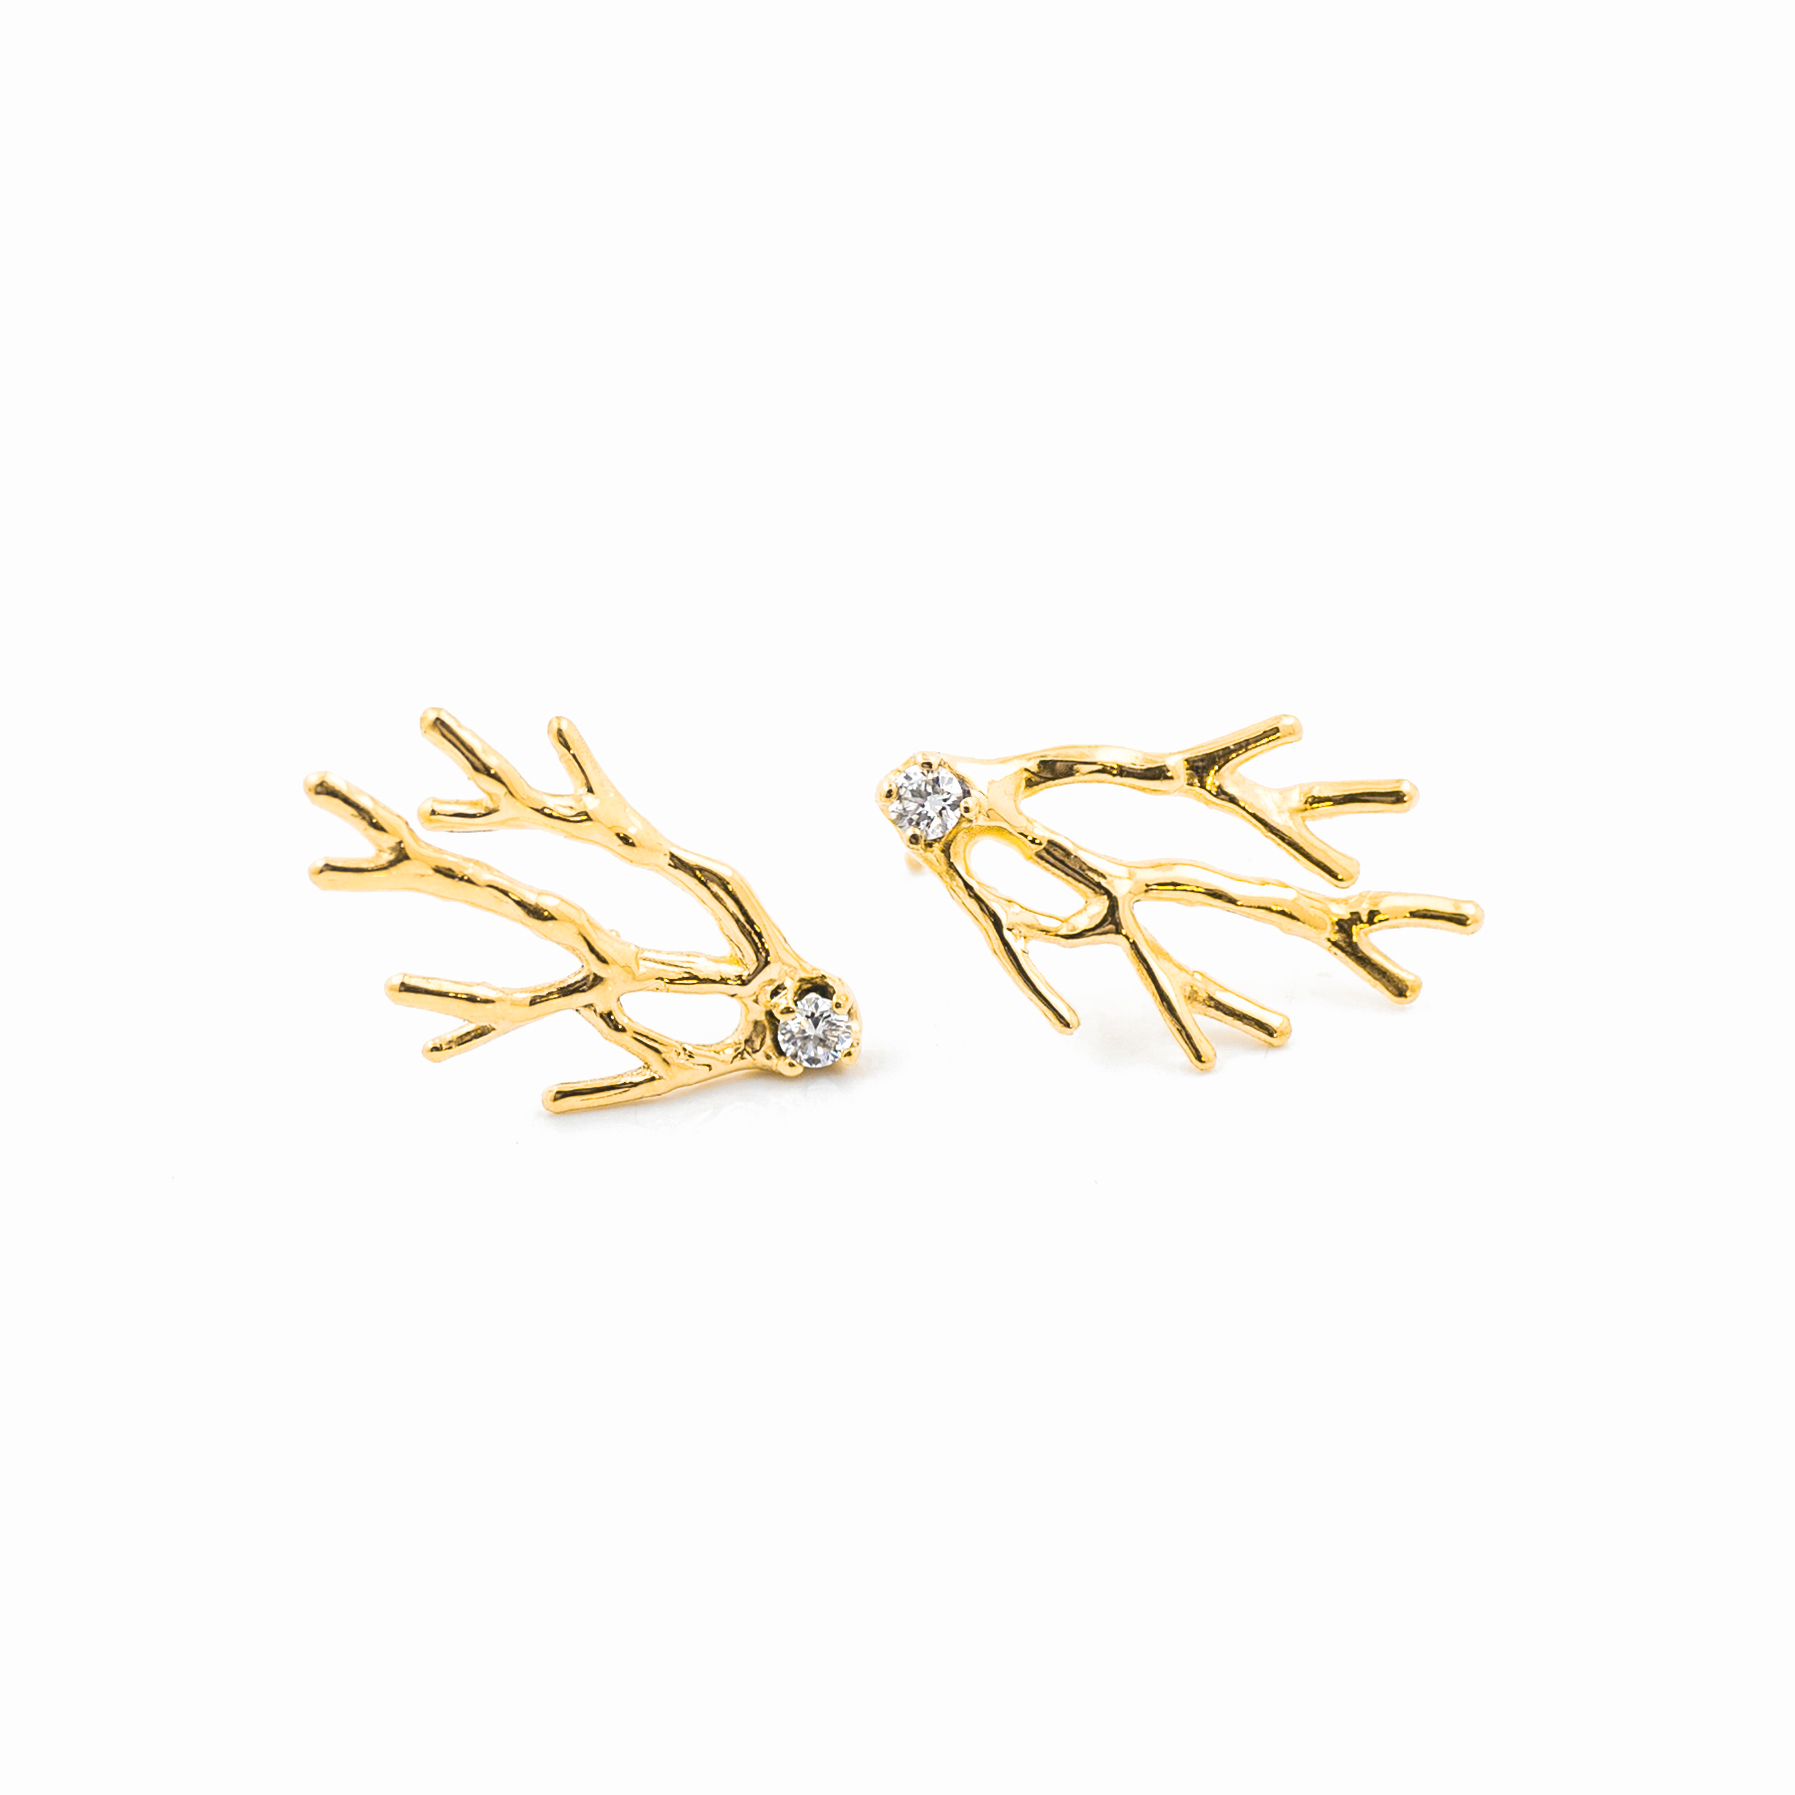 Dendrite Earrings : 18ct yellow gold, brilliant white diamonds